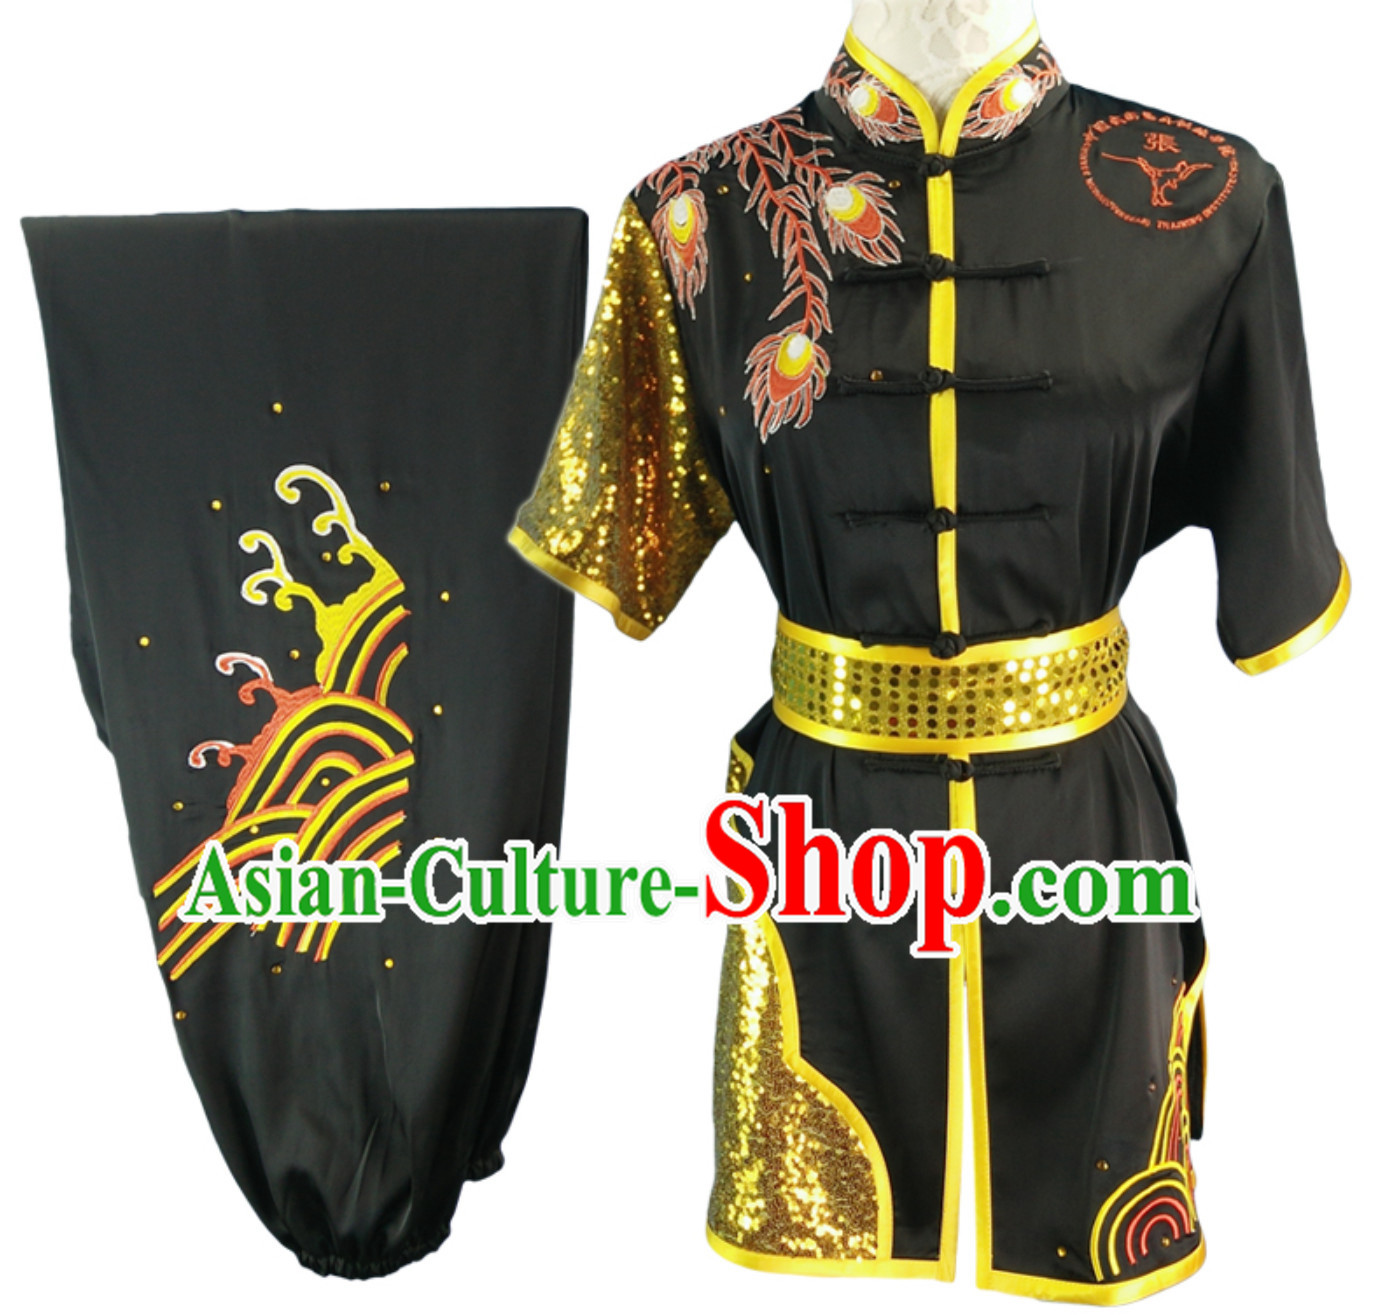 03513a1e7 Top Changquan Nanquan Long Fist Southern Fist Phoenix Embroidery Best and  the Most Professional Kung Fu Martial Arts Clothing Competition Suits